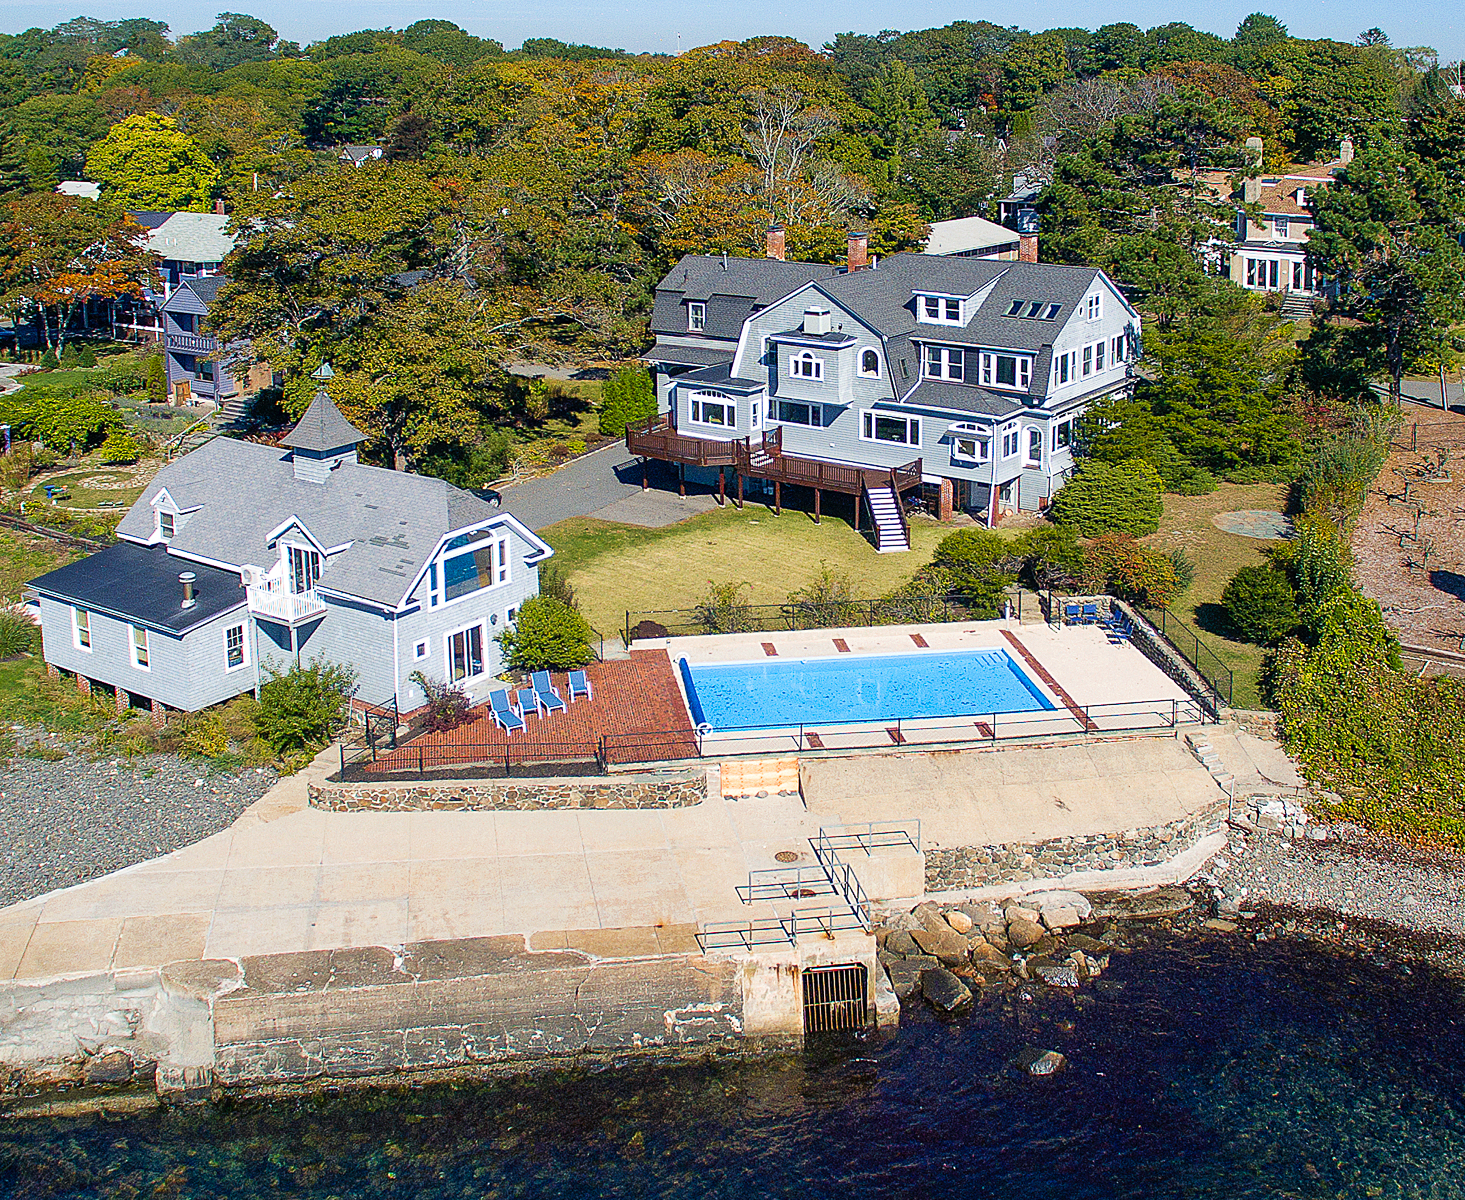 Casa Unifamiliar por un Venta en North of Boston Oceanfront 11 Crown Way Marblehead, Massachusetts, 01945 Estados Unidos